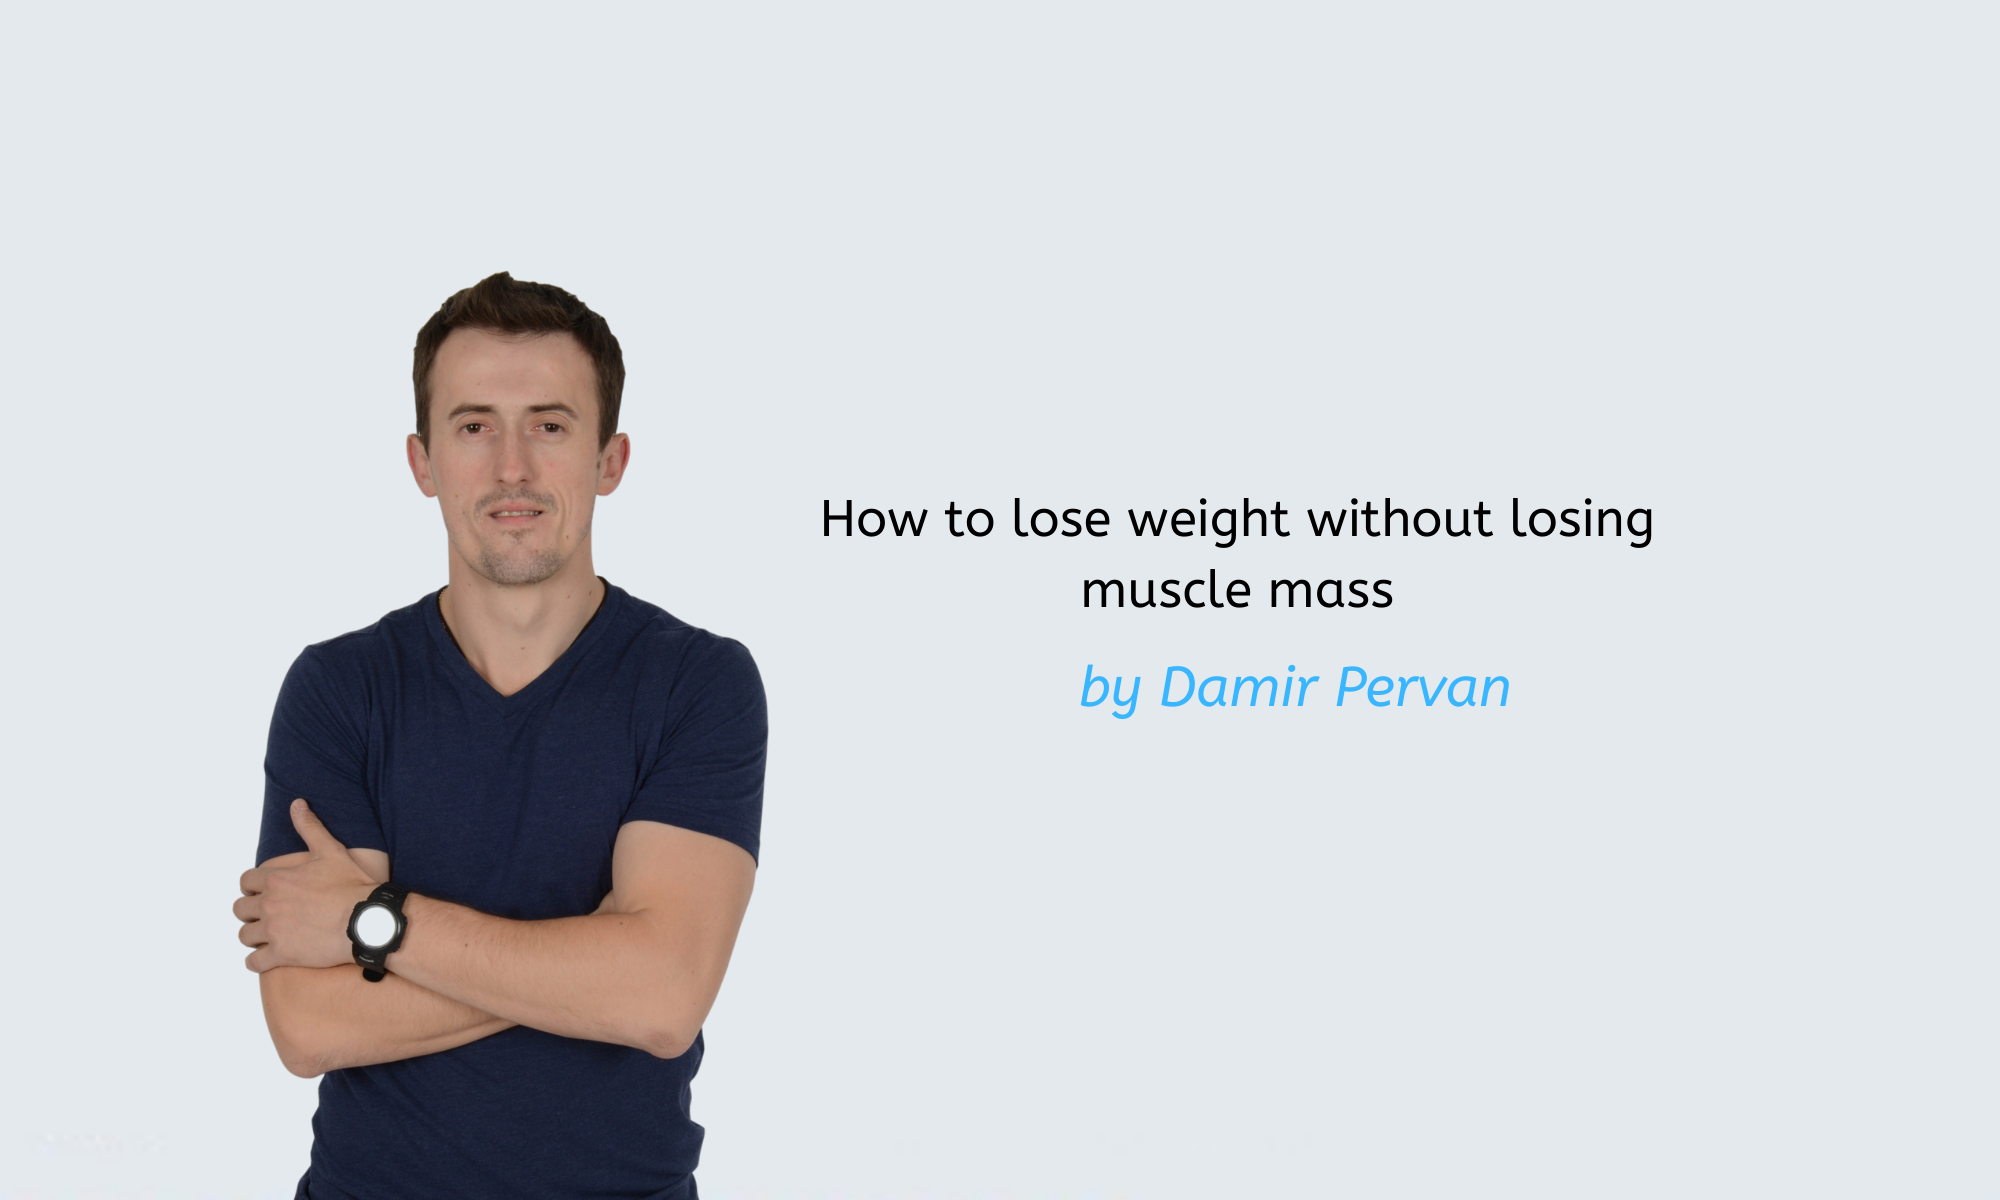 How to lose weight without losing muscle mass